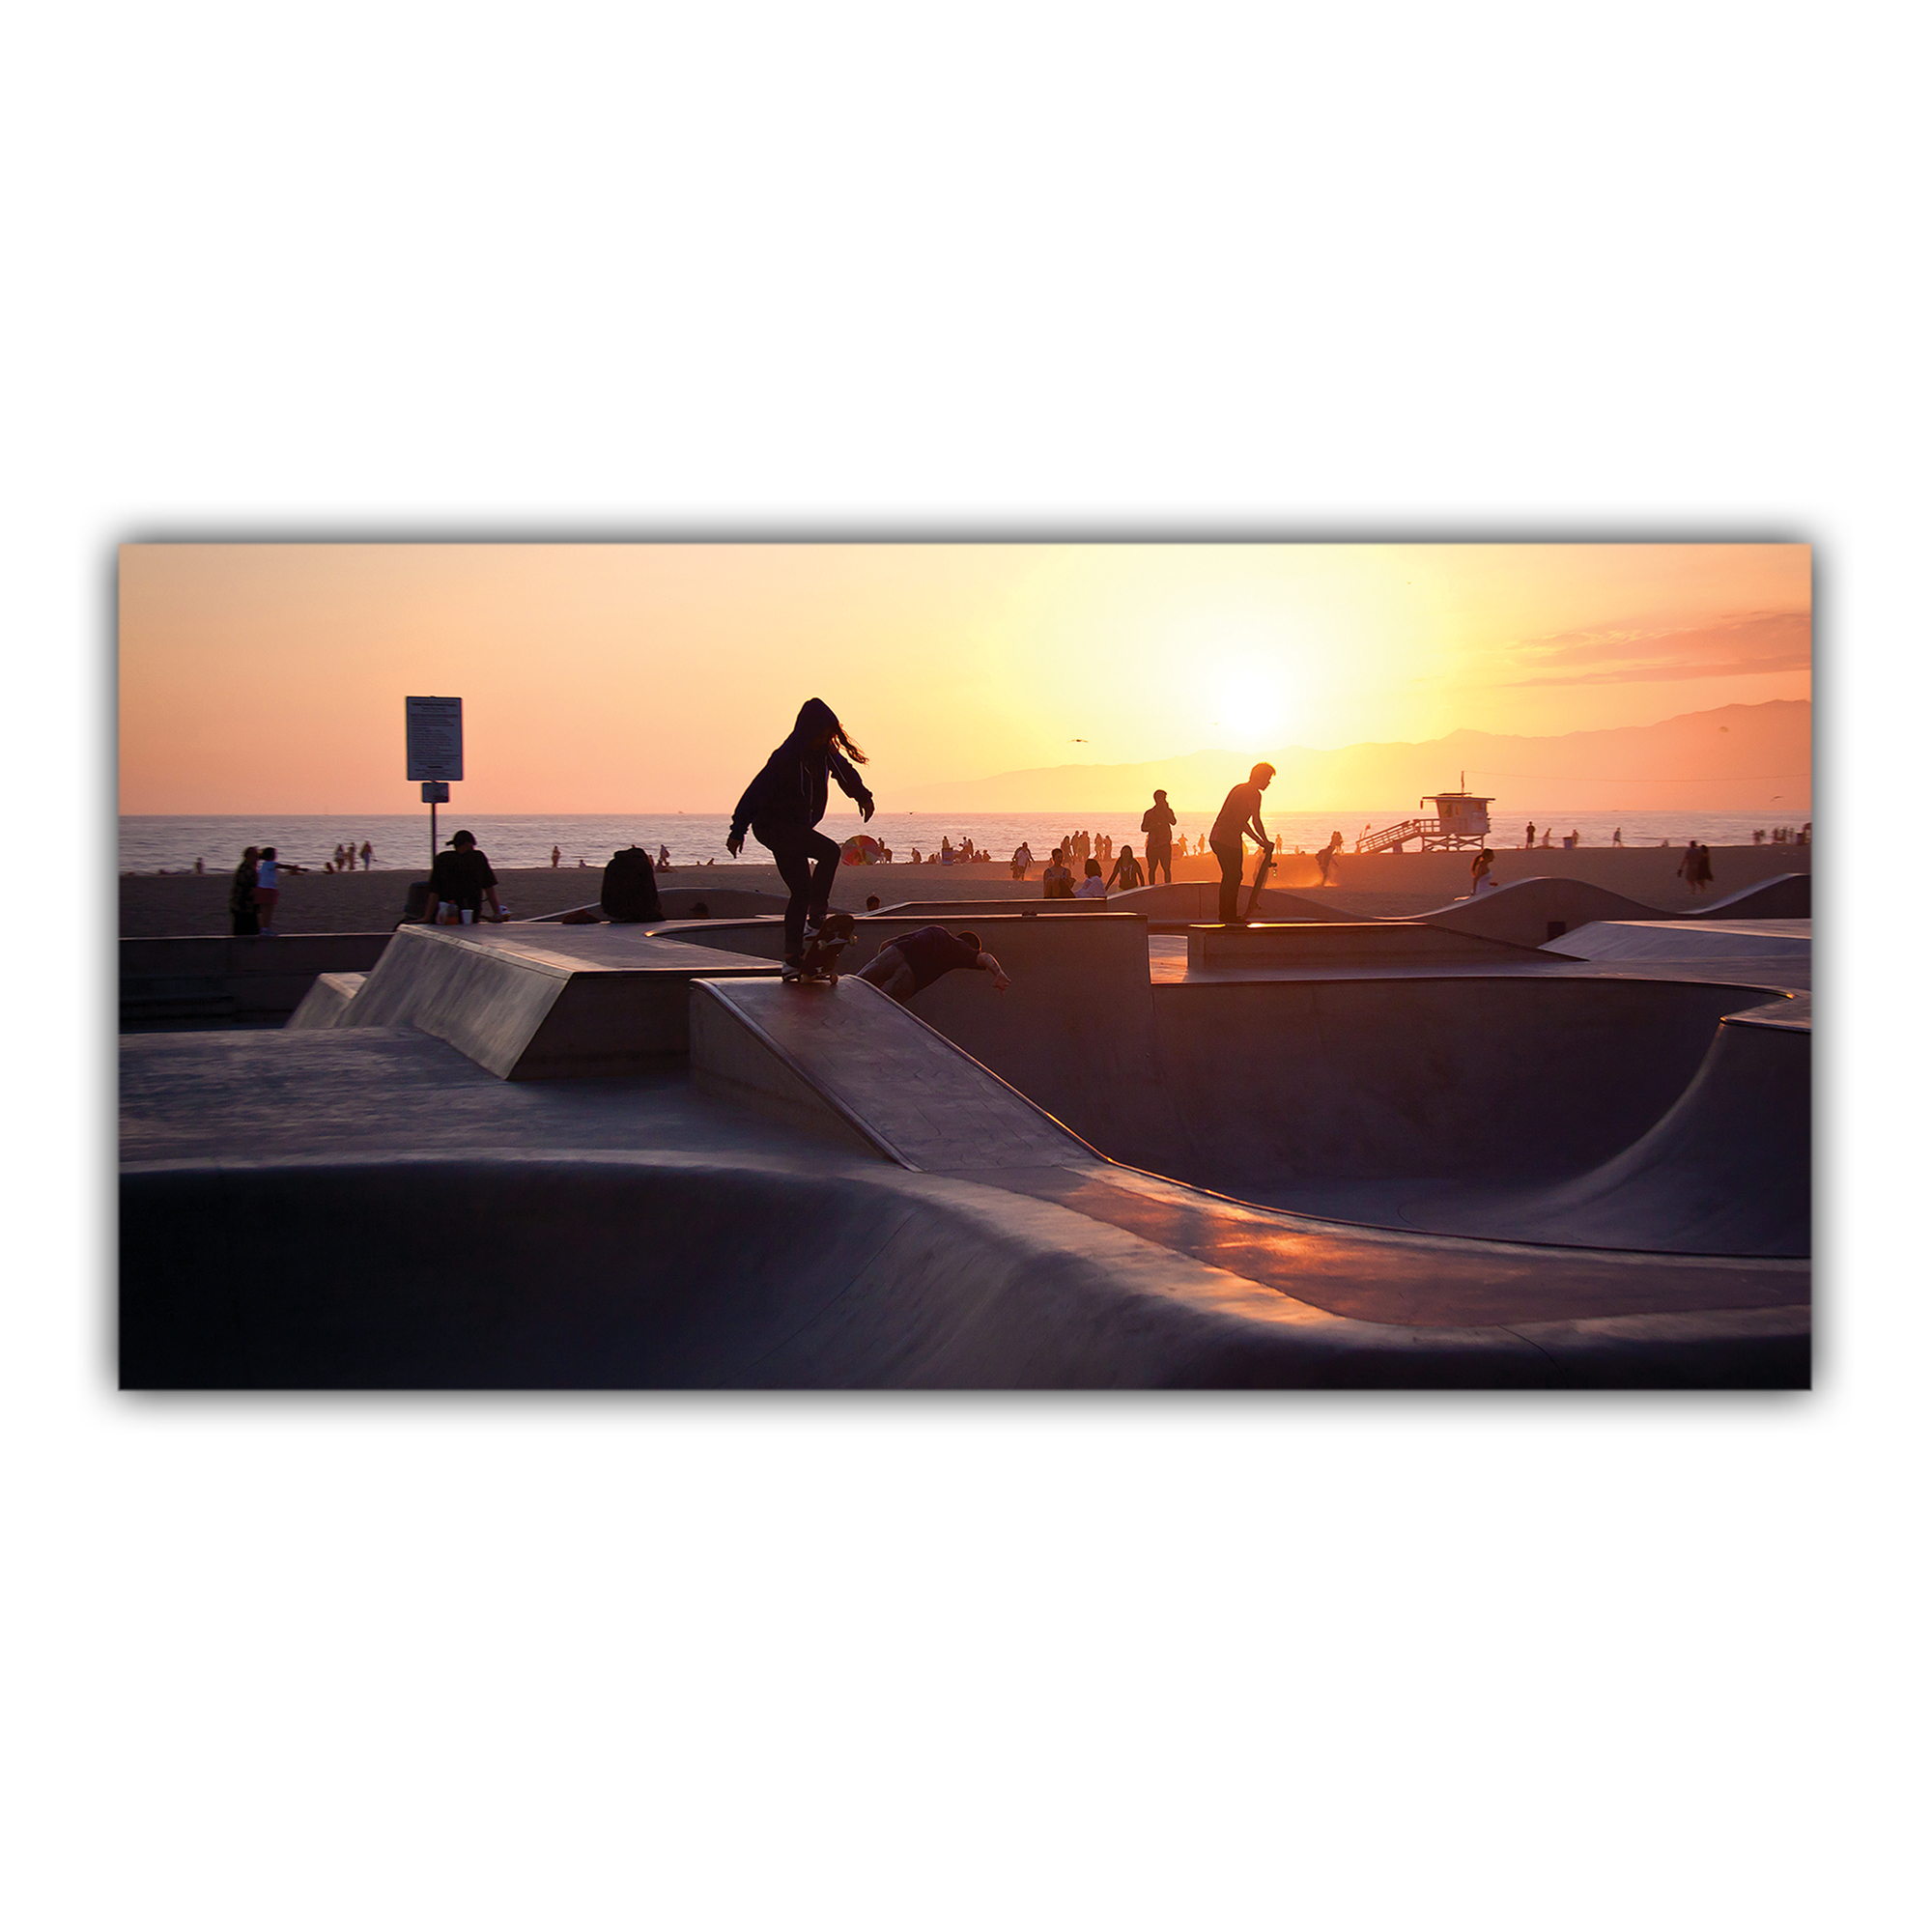 Skate Parc Venice Beach Los Angeles Californie USA Soleil